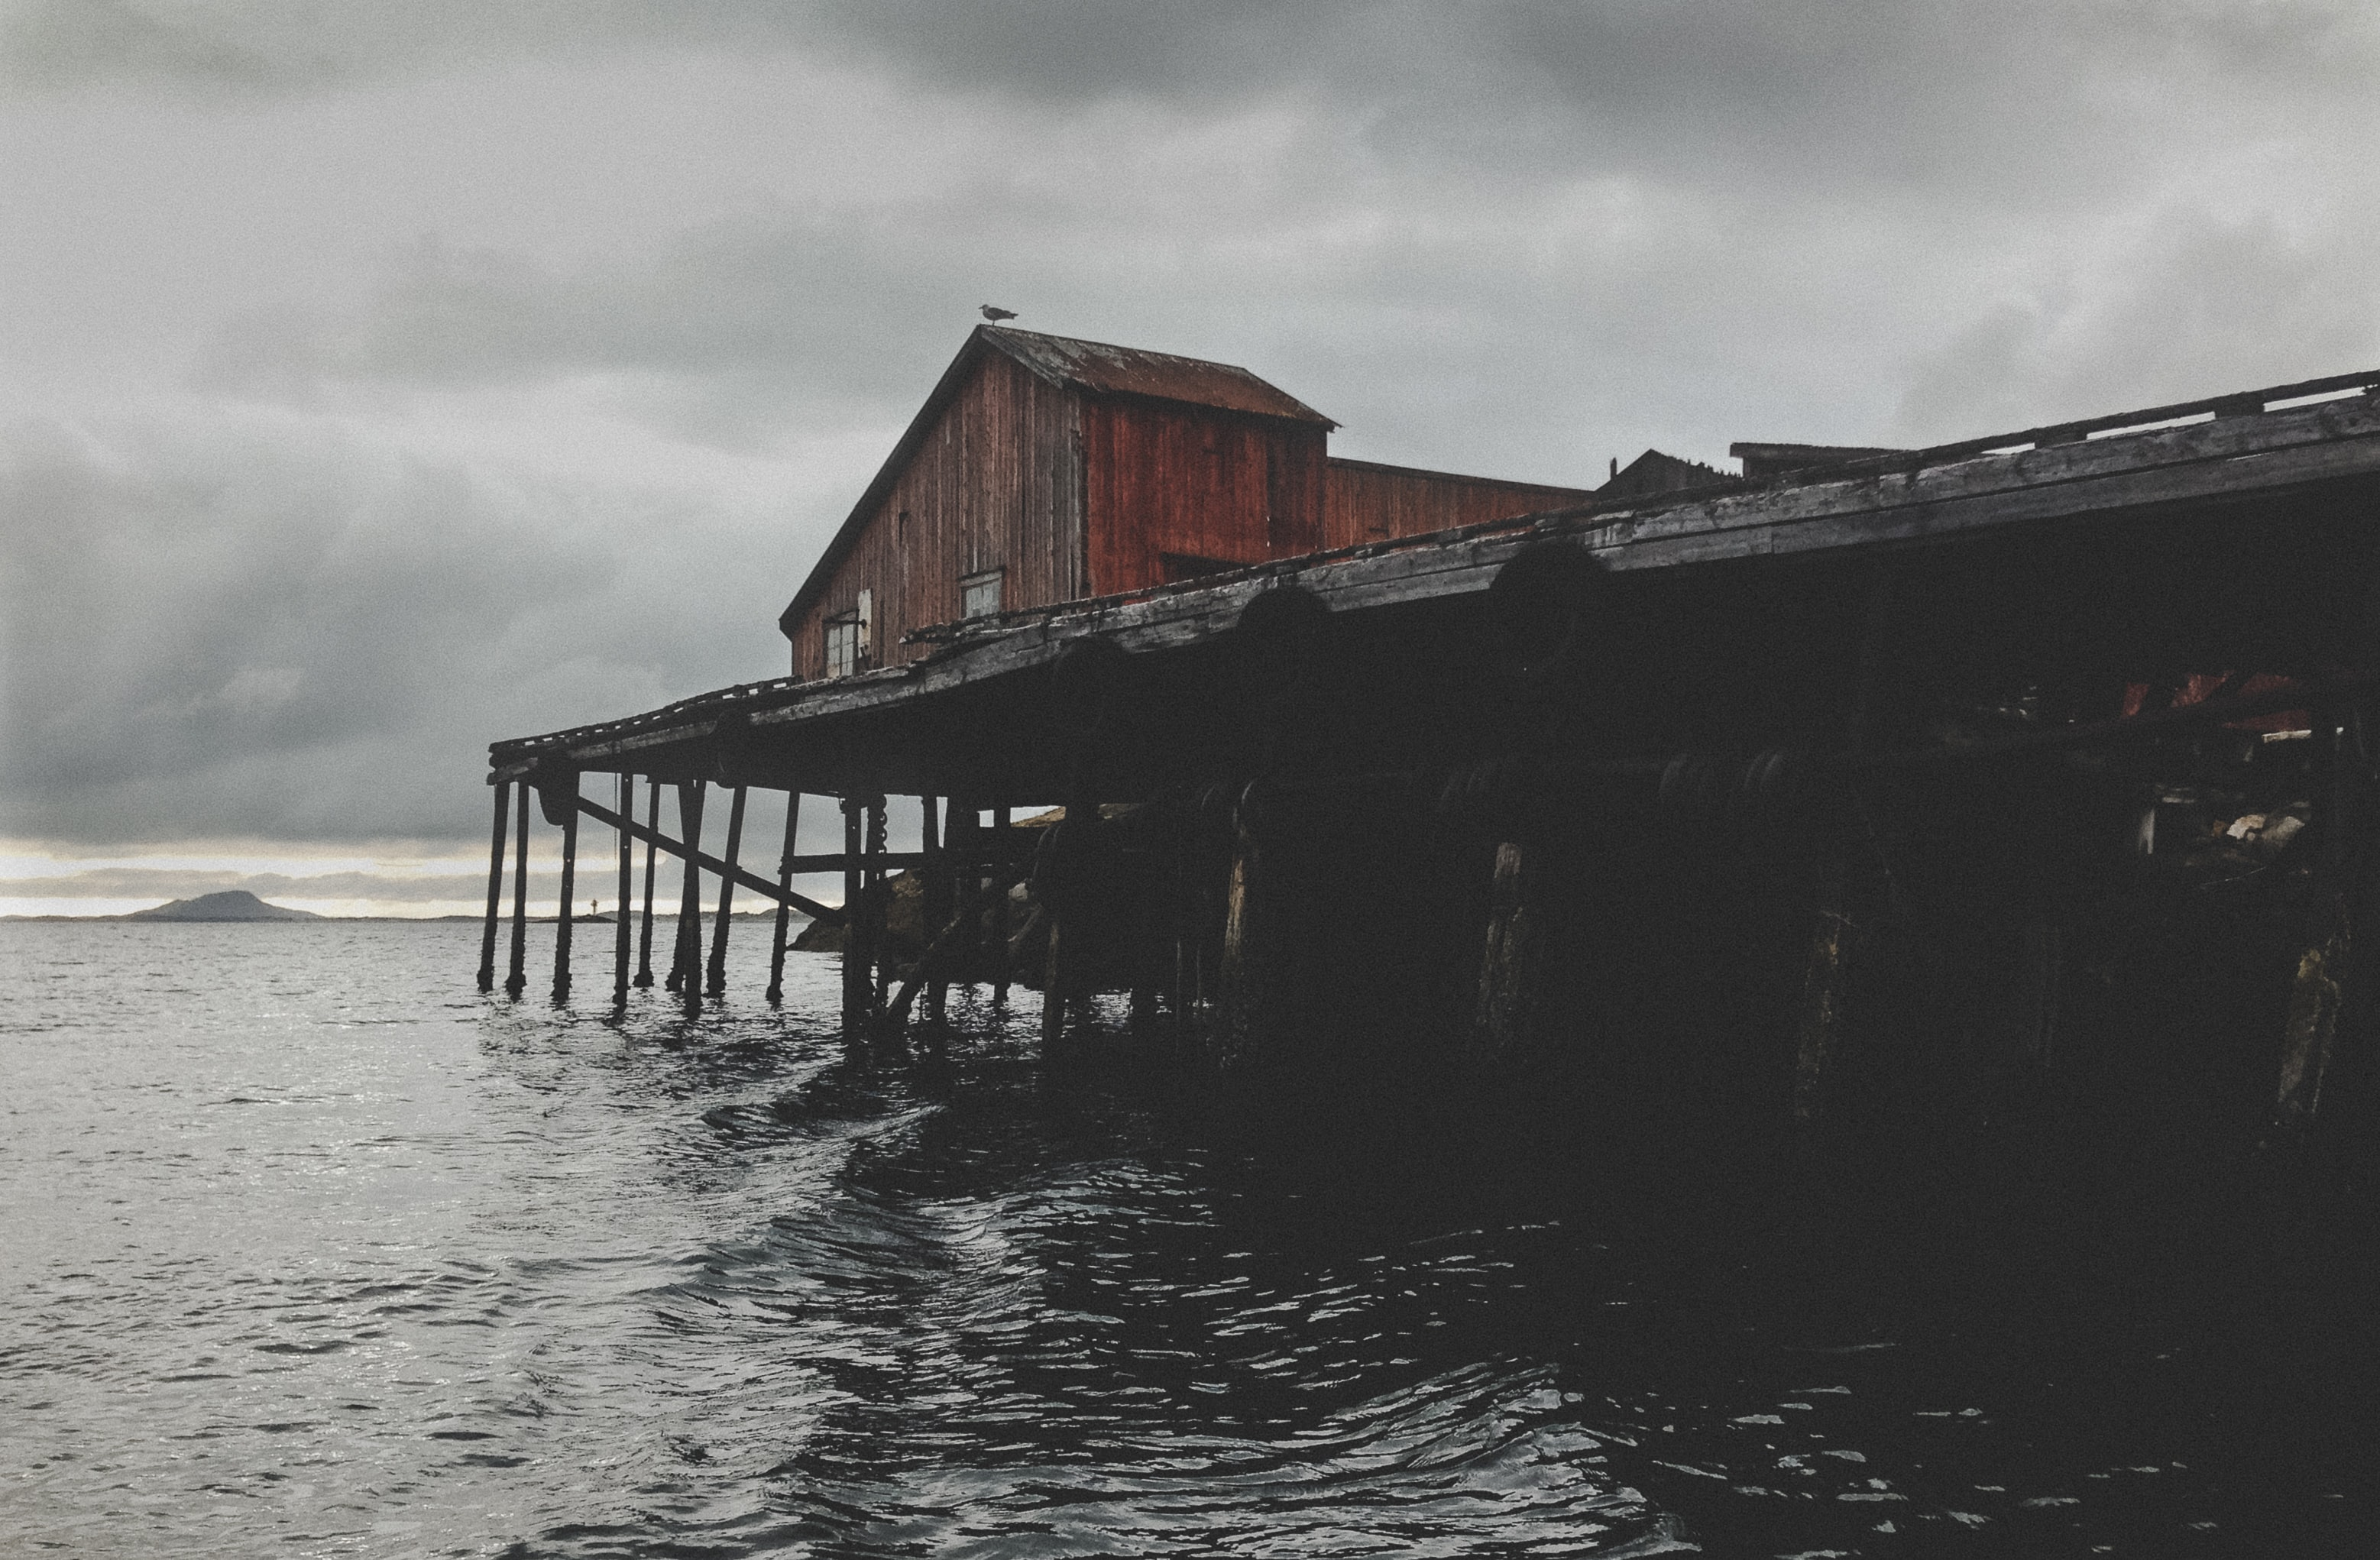 brown wooden house above water